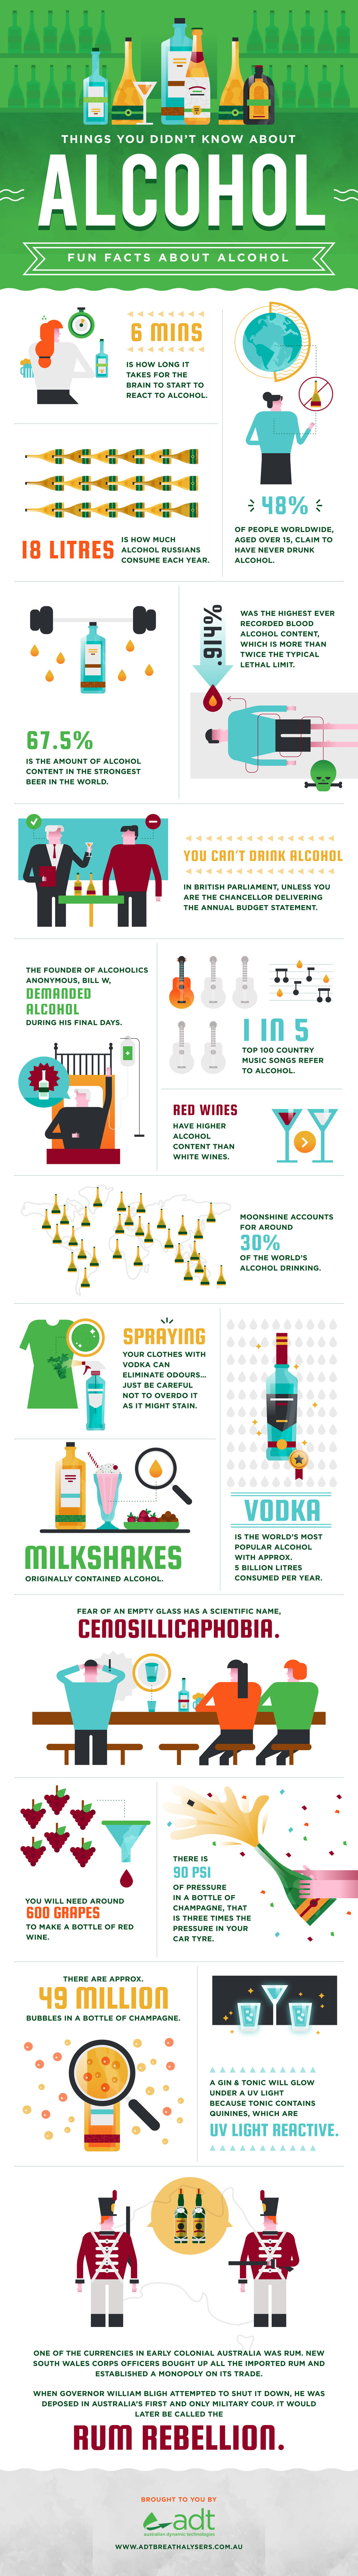 Things You Didn't Know About Alcohol